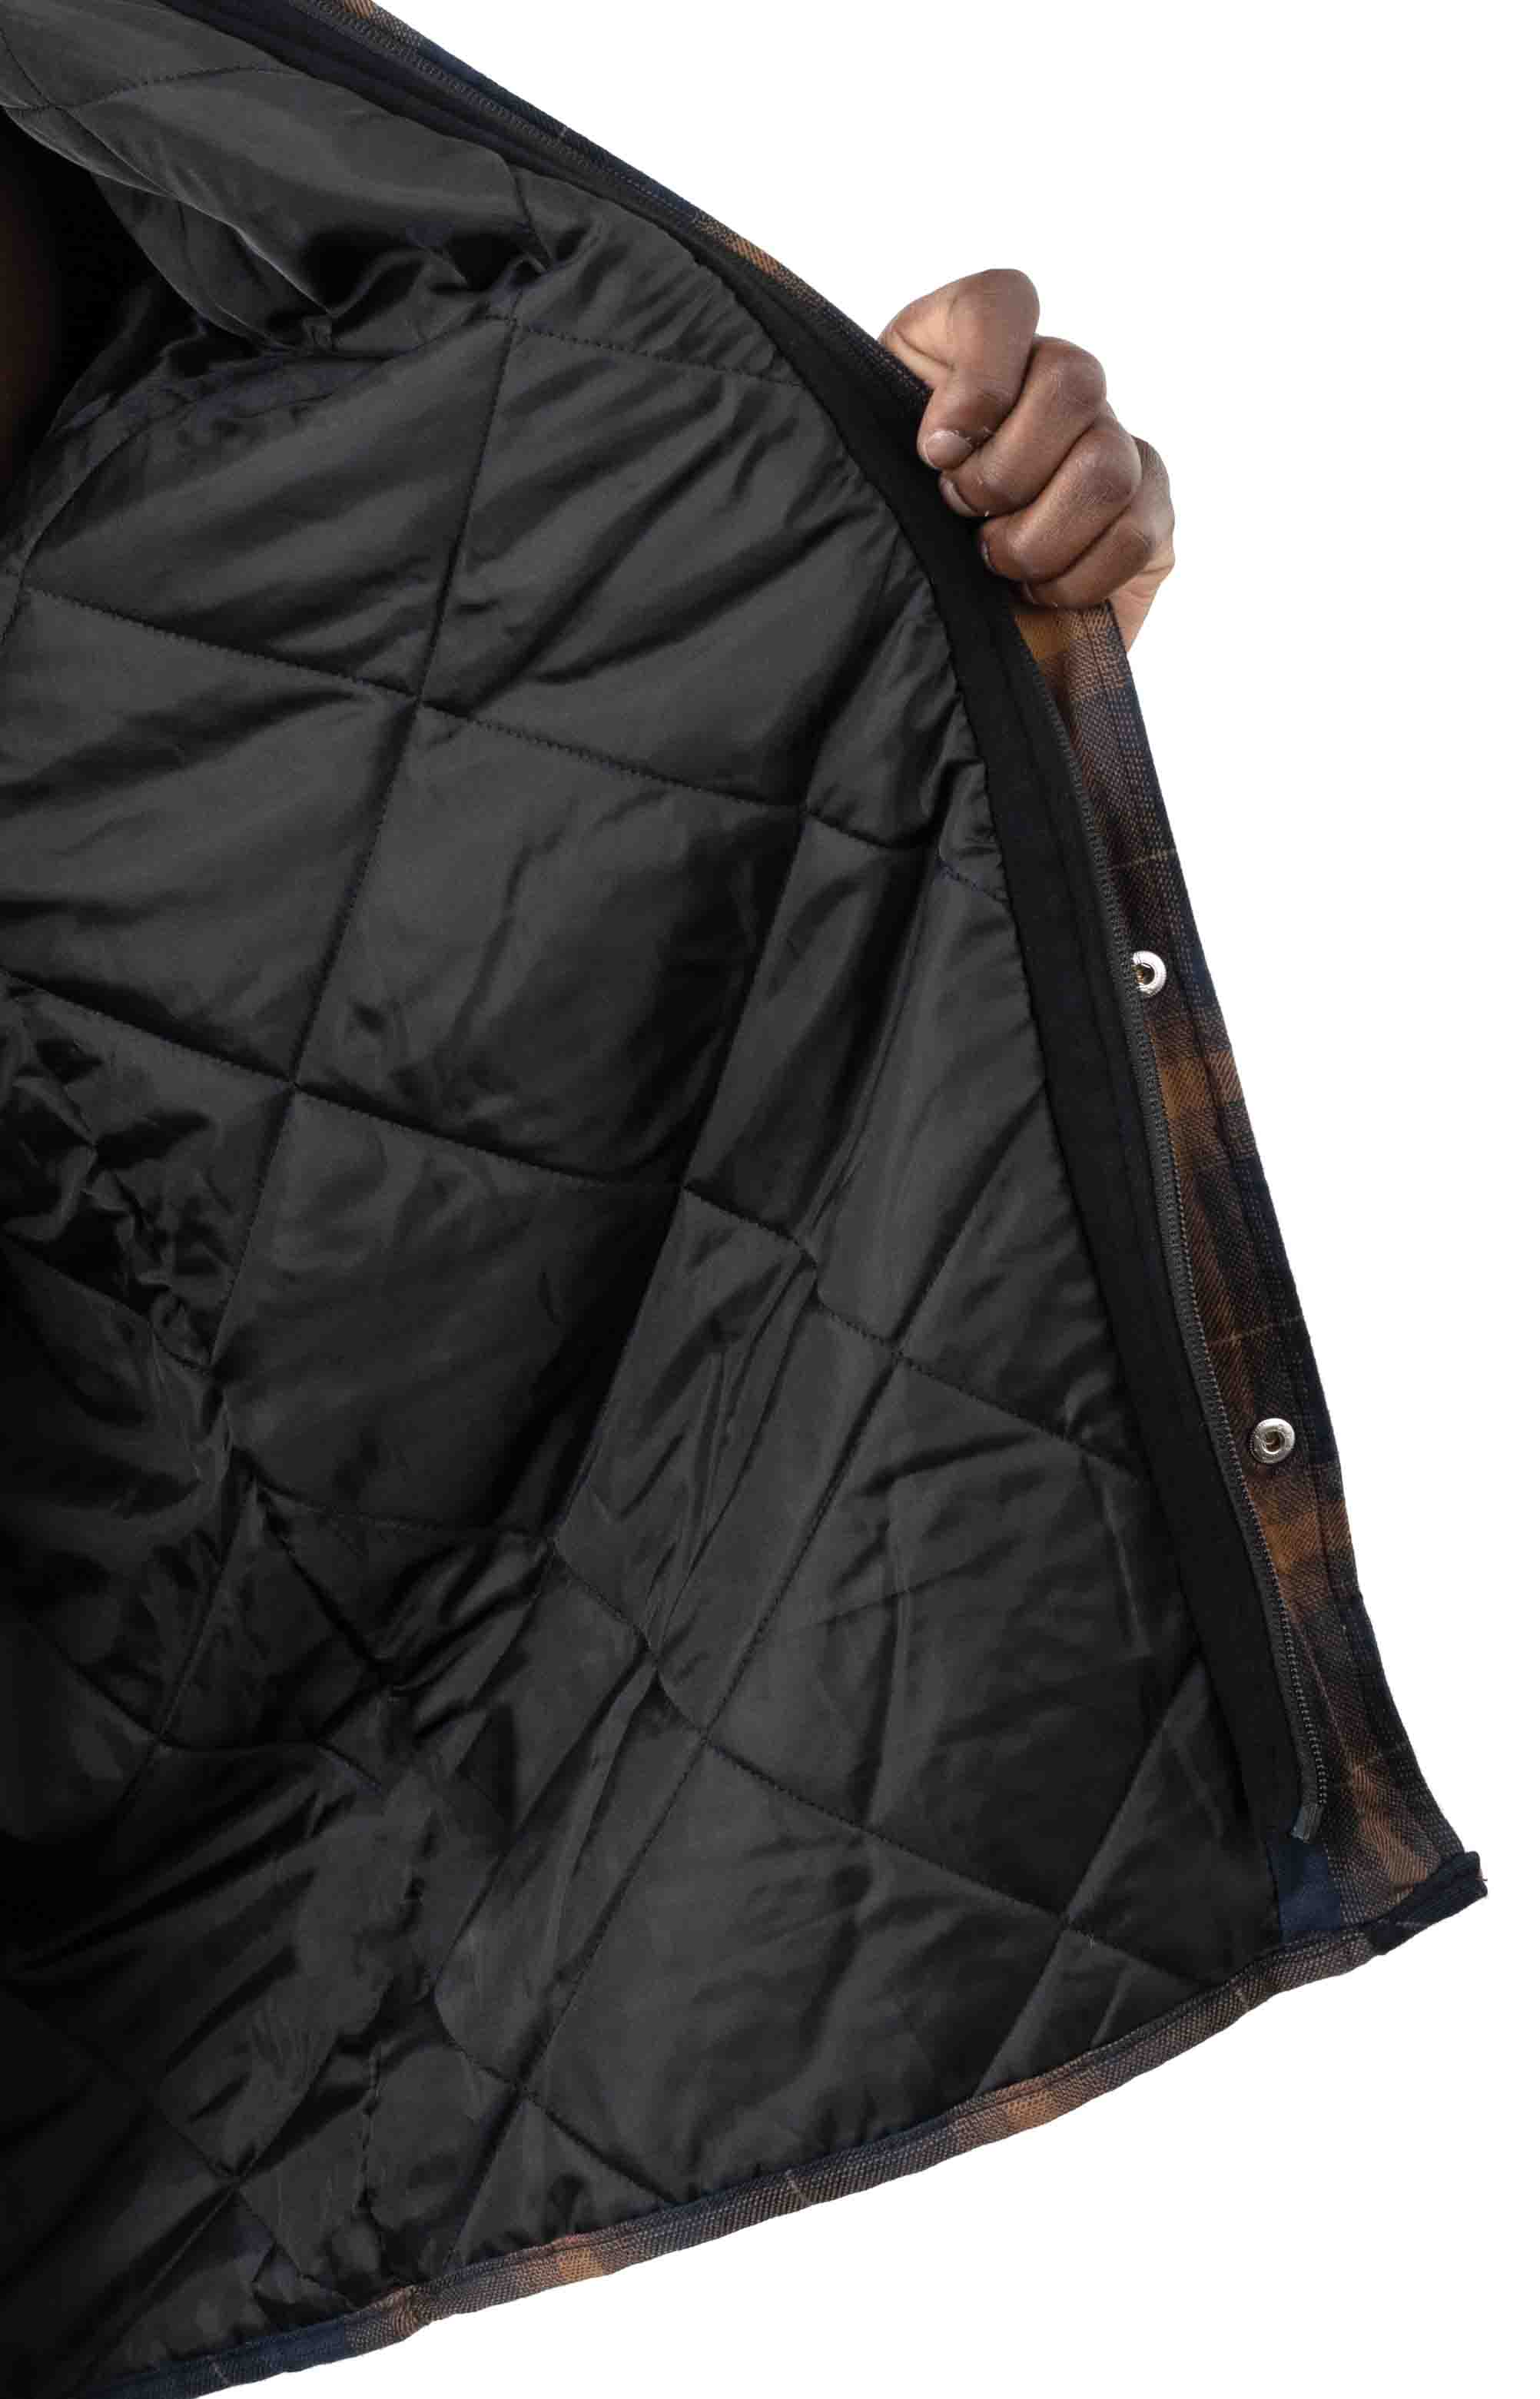 (TJ211IP1) Fleece Hooded Flannel Shirt Jacket with Hydroshield - Ink Navy Brown Ombre Plaid 4